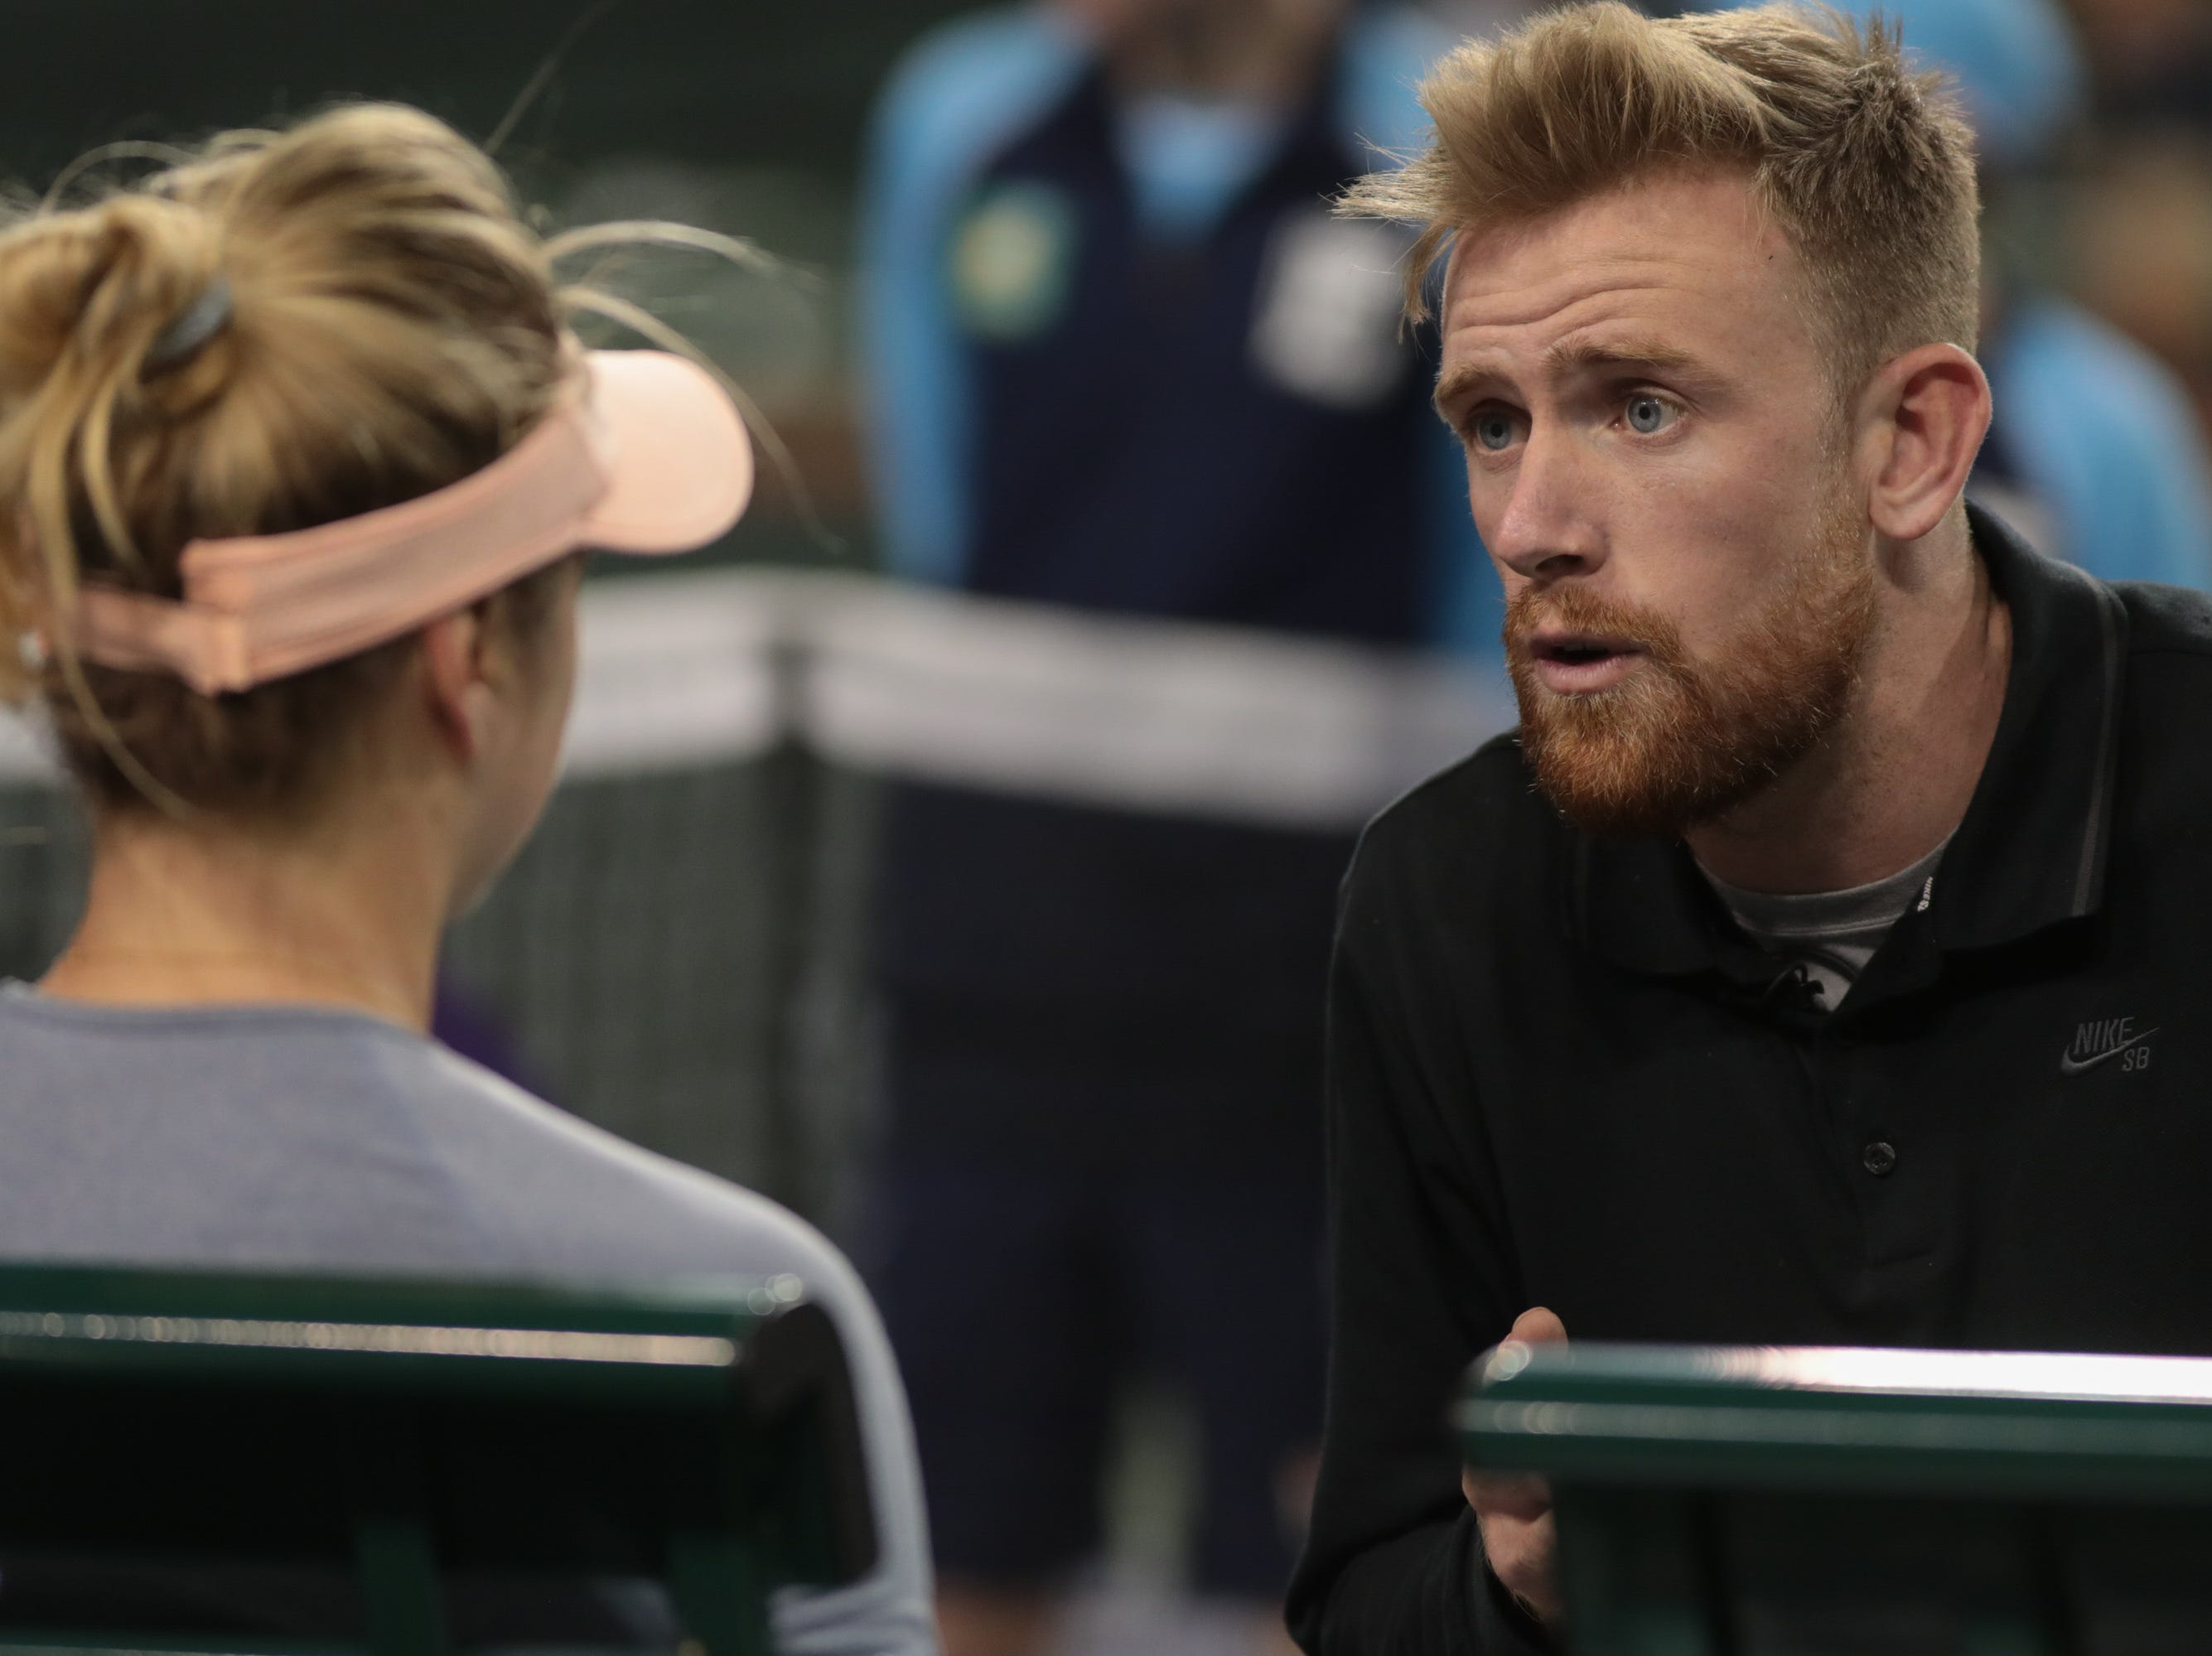 Elina Svitolina talks to her couch Andrew Bettles during her match against Marketa Vondrousova at the BNP Paribas Open in Indian Wells, Calif., March 13, 2019.